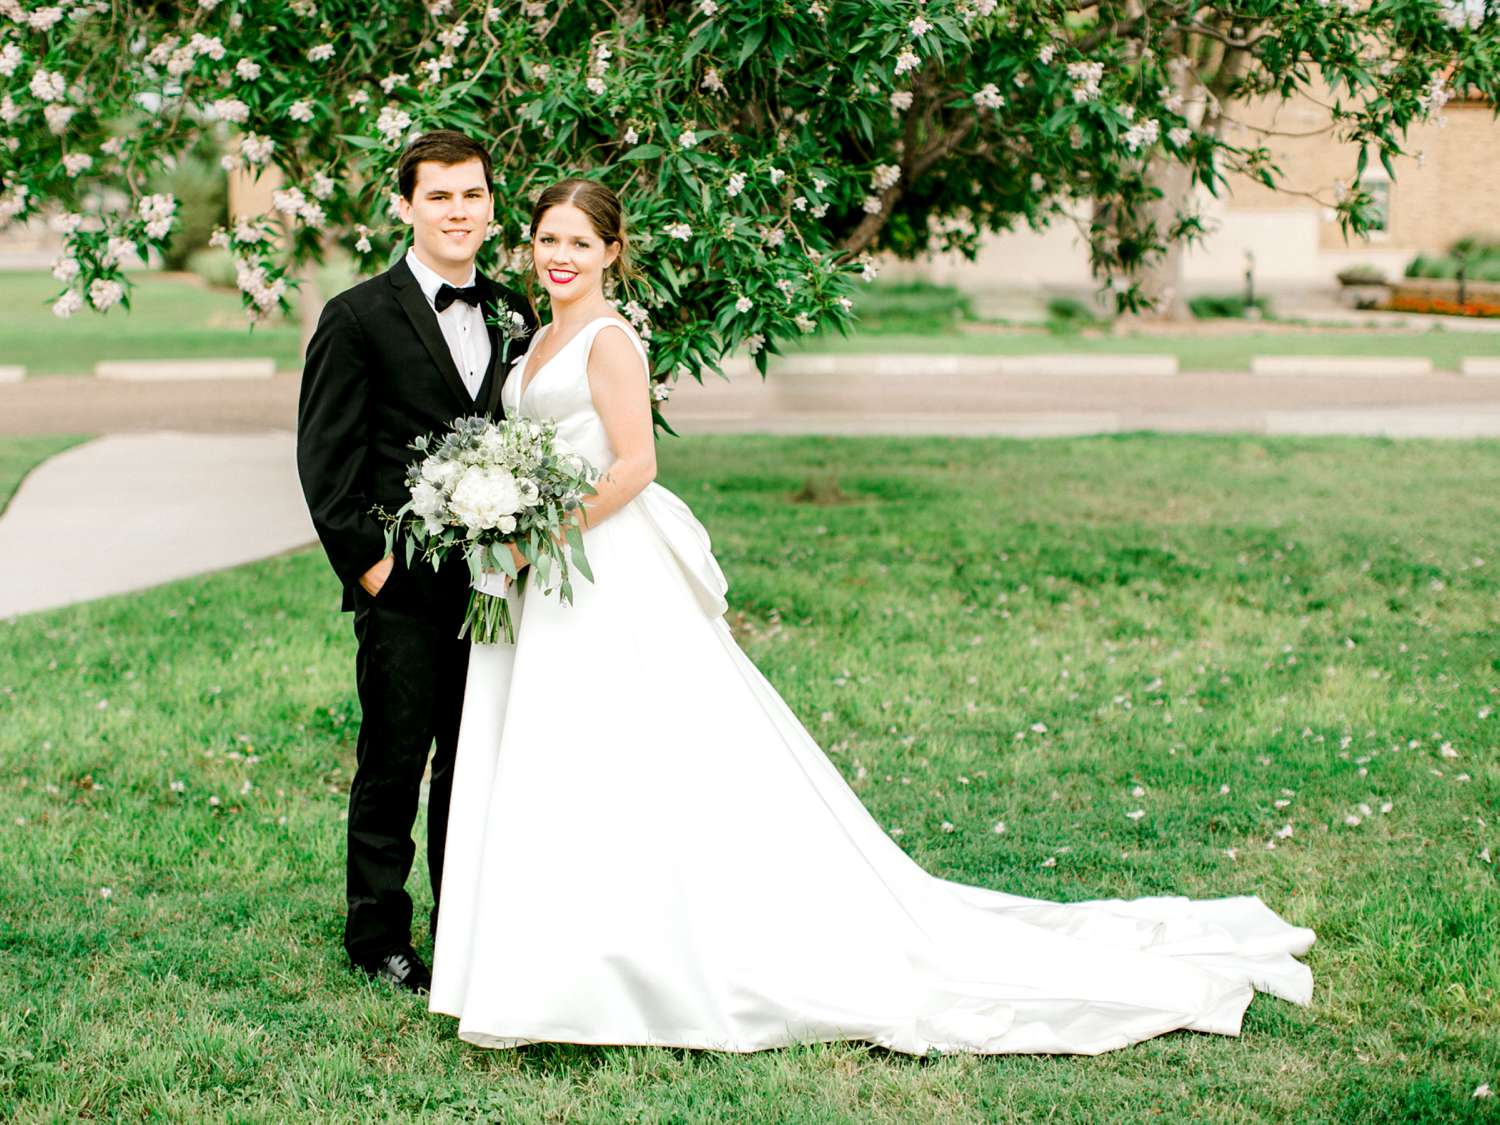 HANNAH+CRAIG+CHILDS+TEXAS+TECH+WEDDING+ALLEEJ+LUBBOCK+PHOTOGRAPHER_0104.jpg